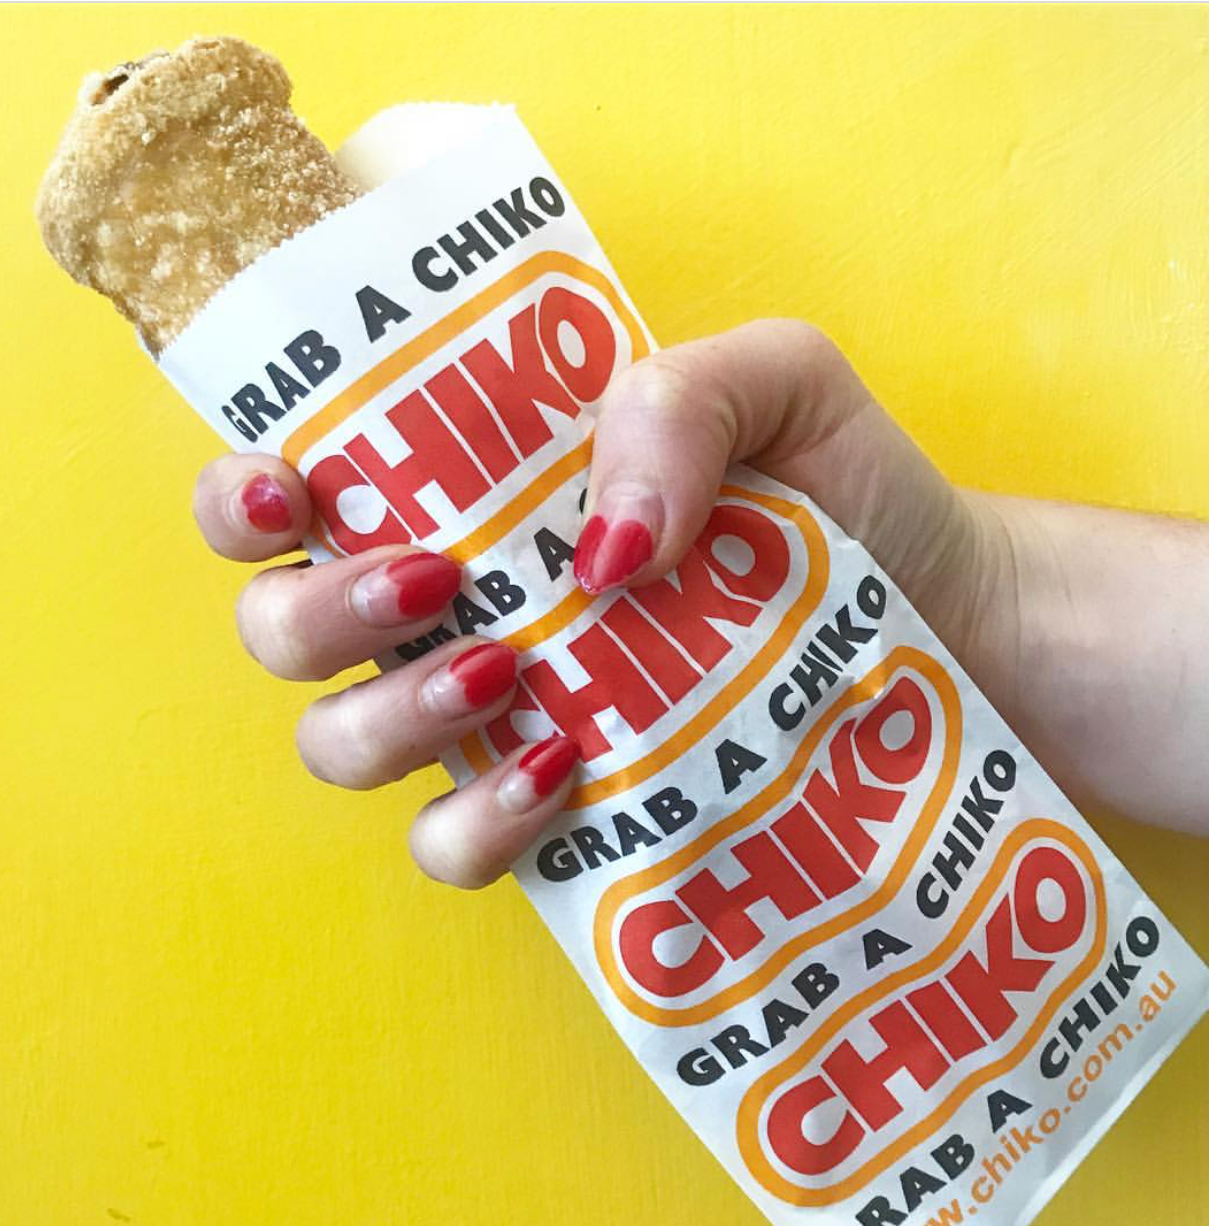 1. The chiko roll - A strange, deep fried snack based on a Chinese spring roll, containing ingredients that are mostly unidentifiable.